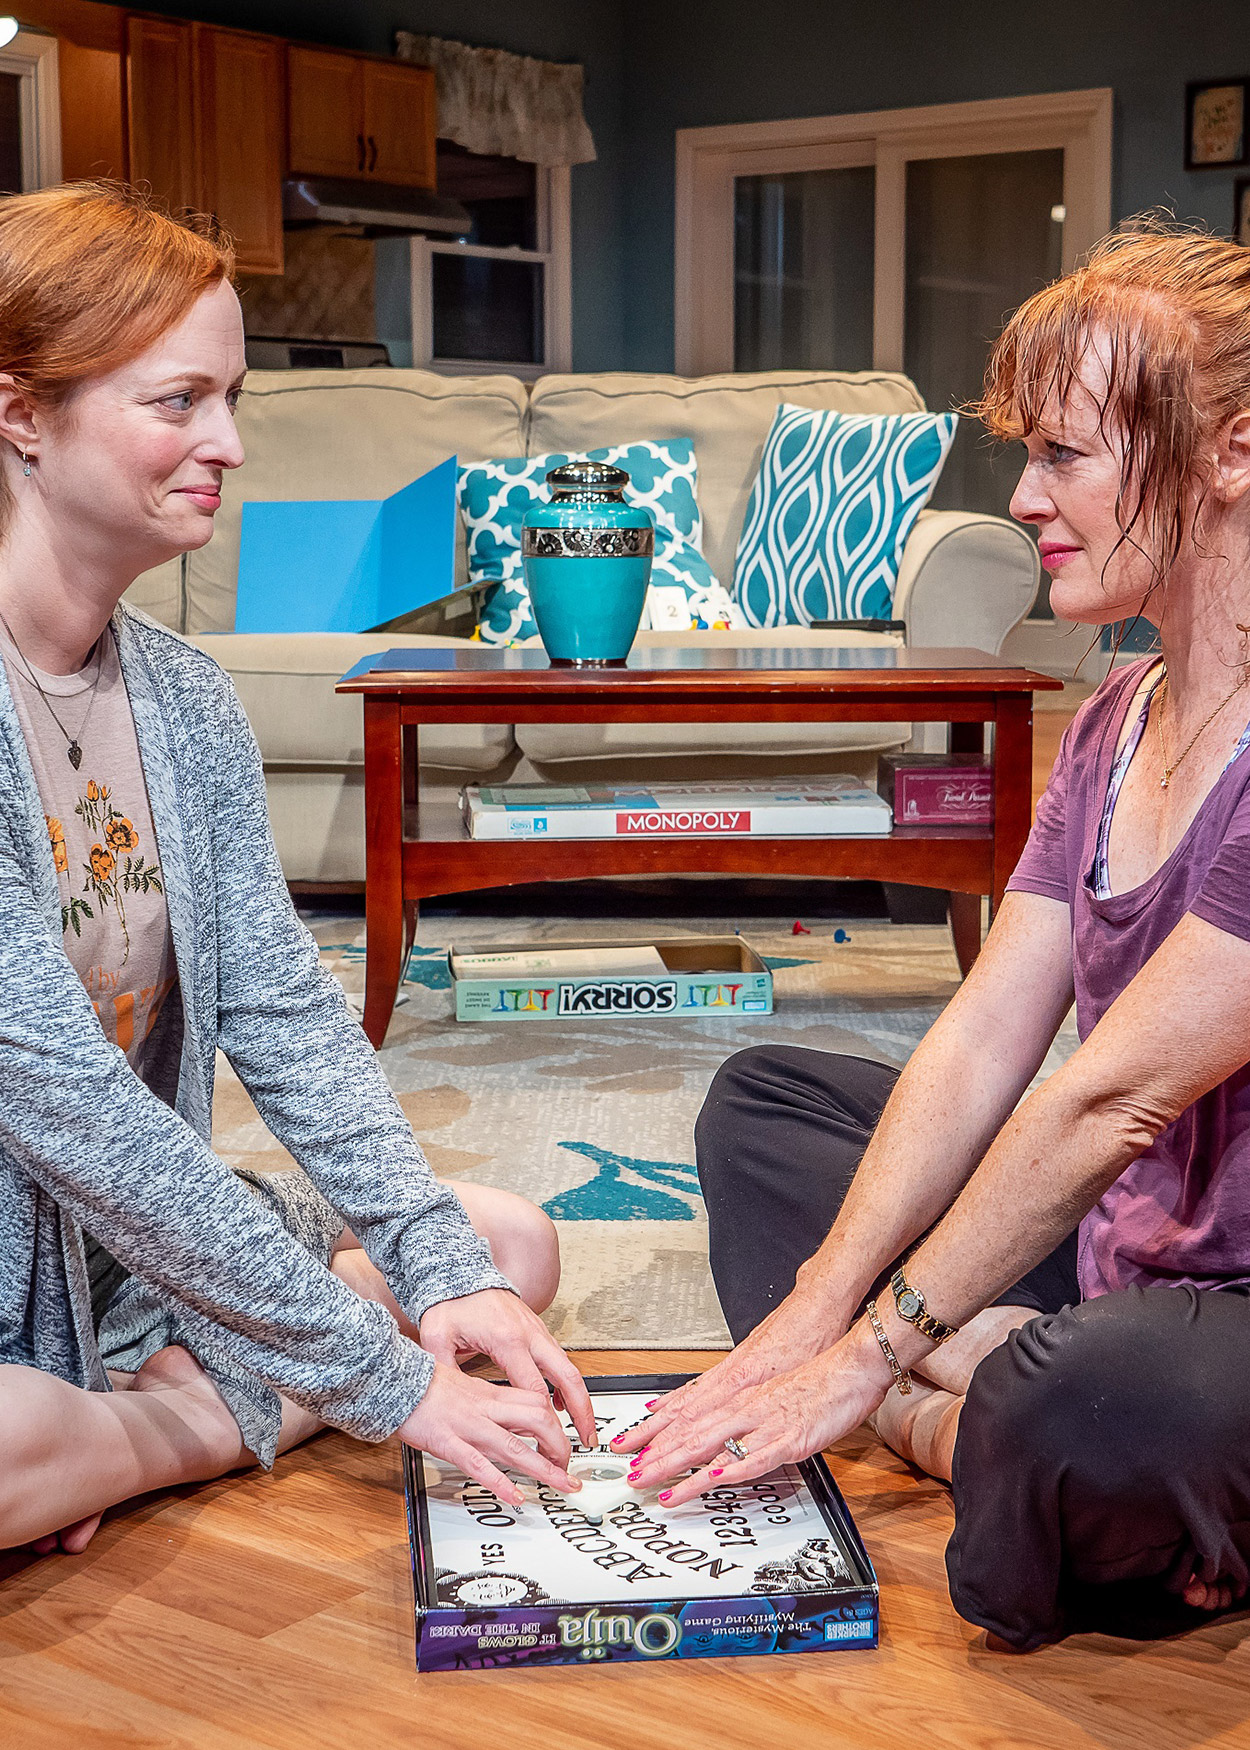 Production photo from The Wake (2019). Two red-haired woman sit on the floor in a living room. Between them, on the floor, is a Oujia board.